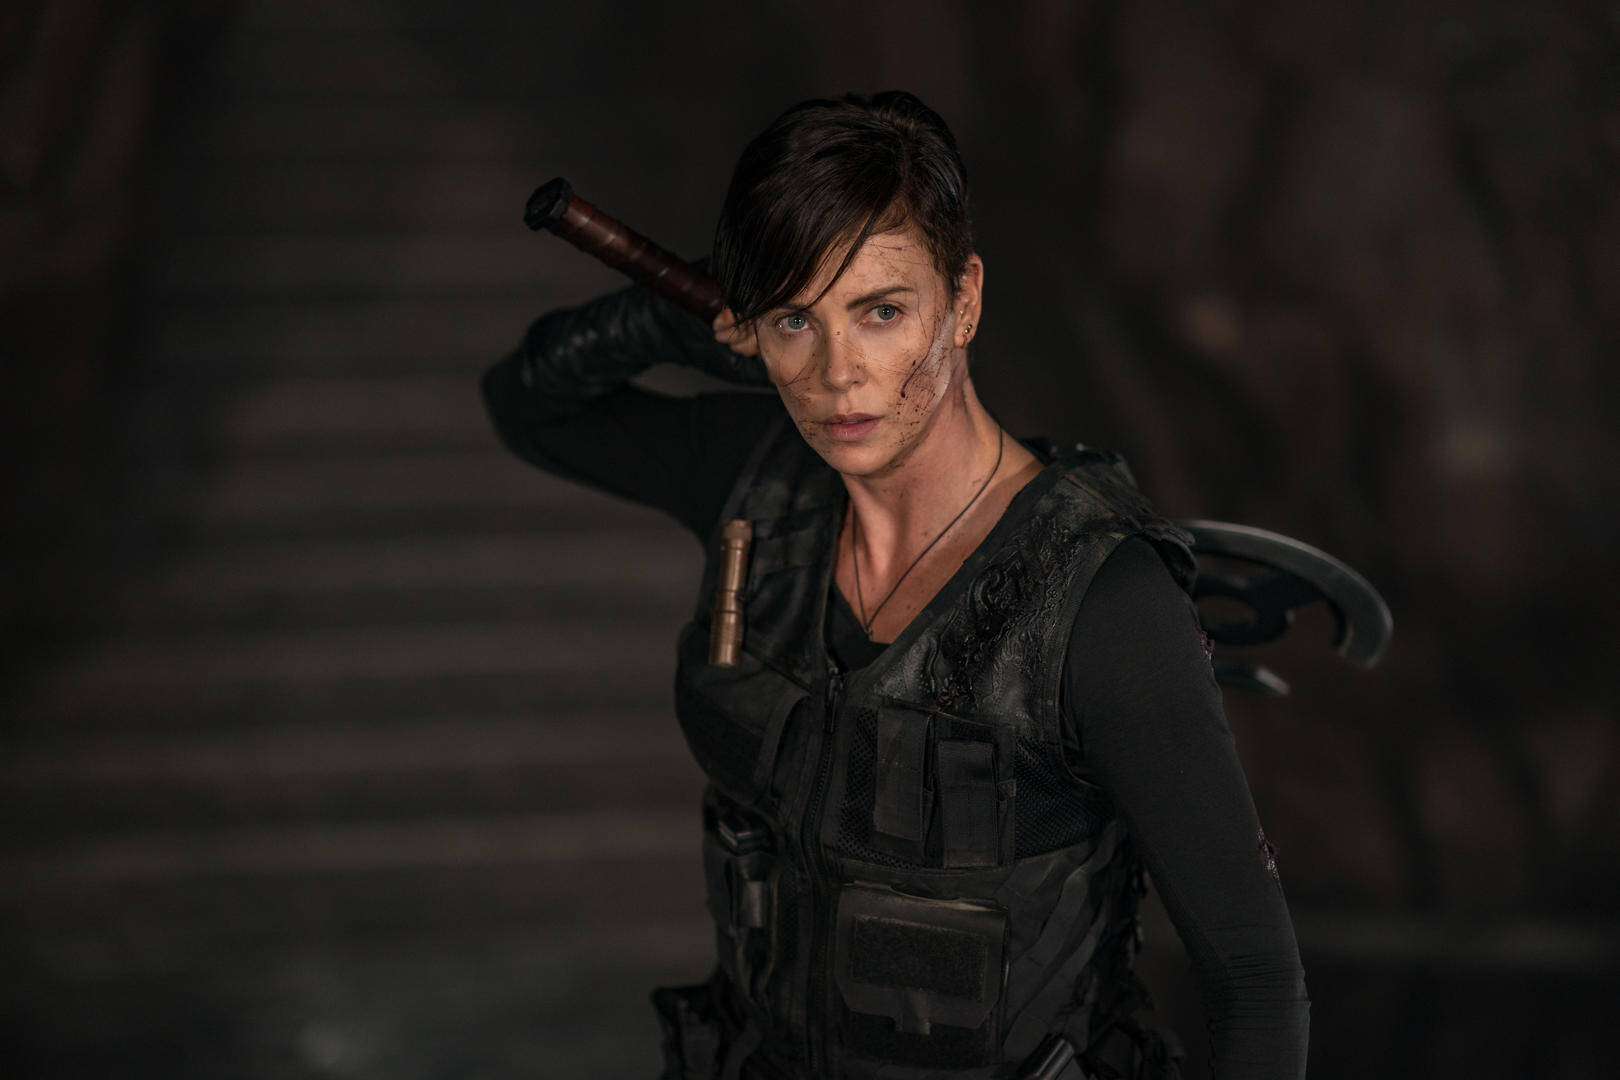 Charlize Theron protagonista di The Old Guard